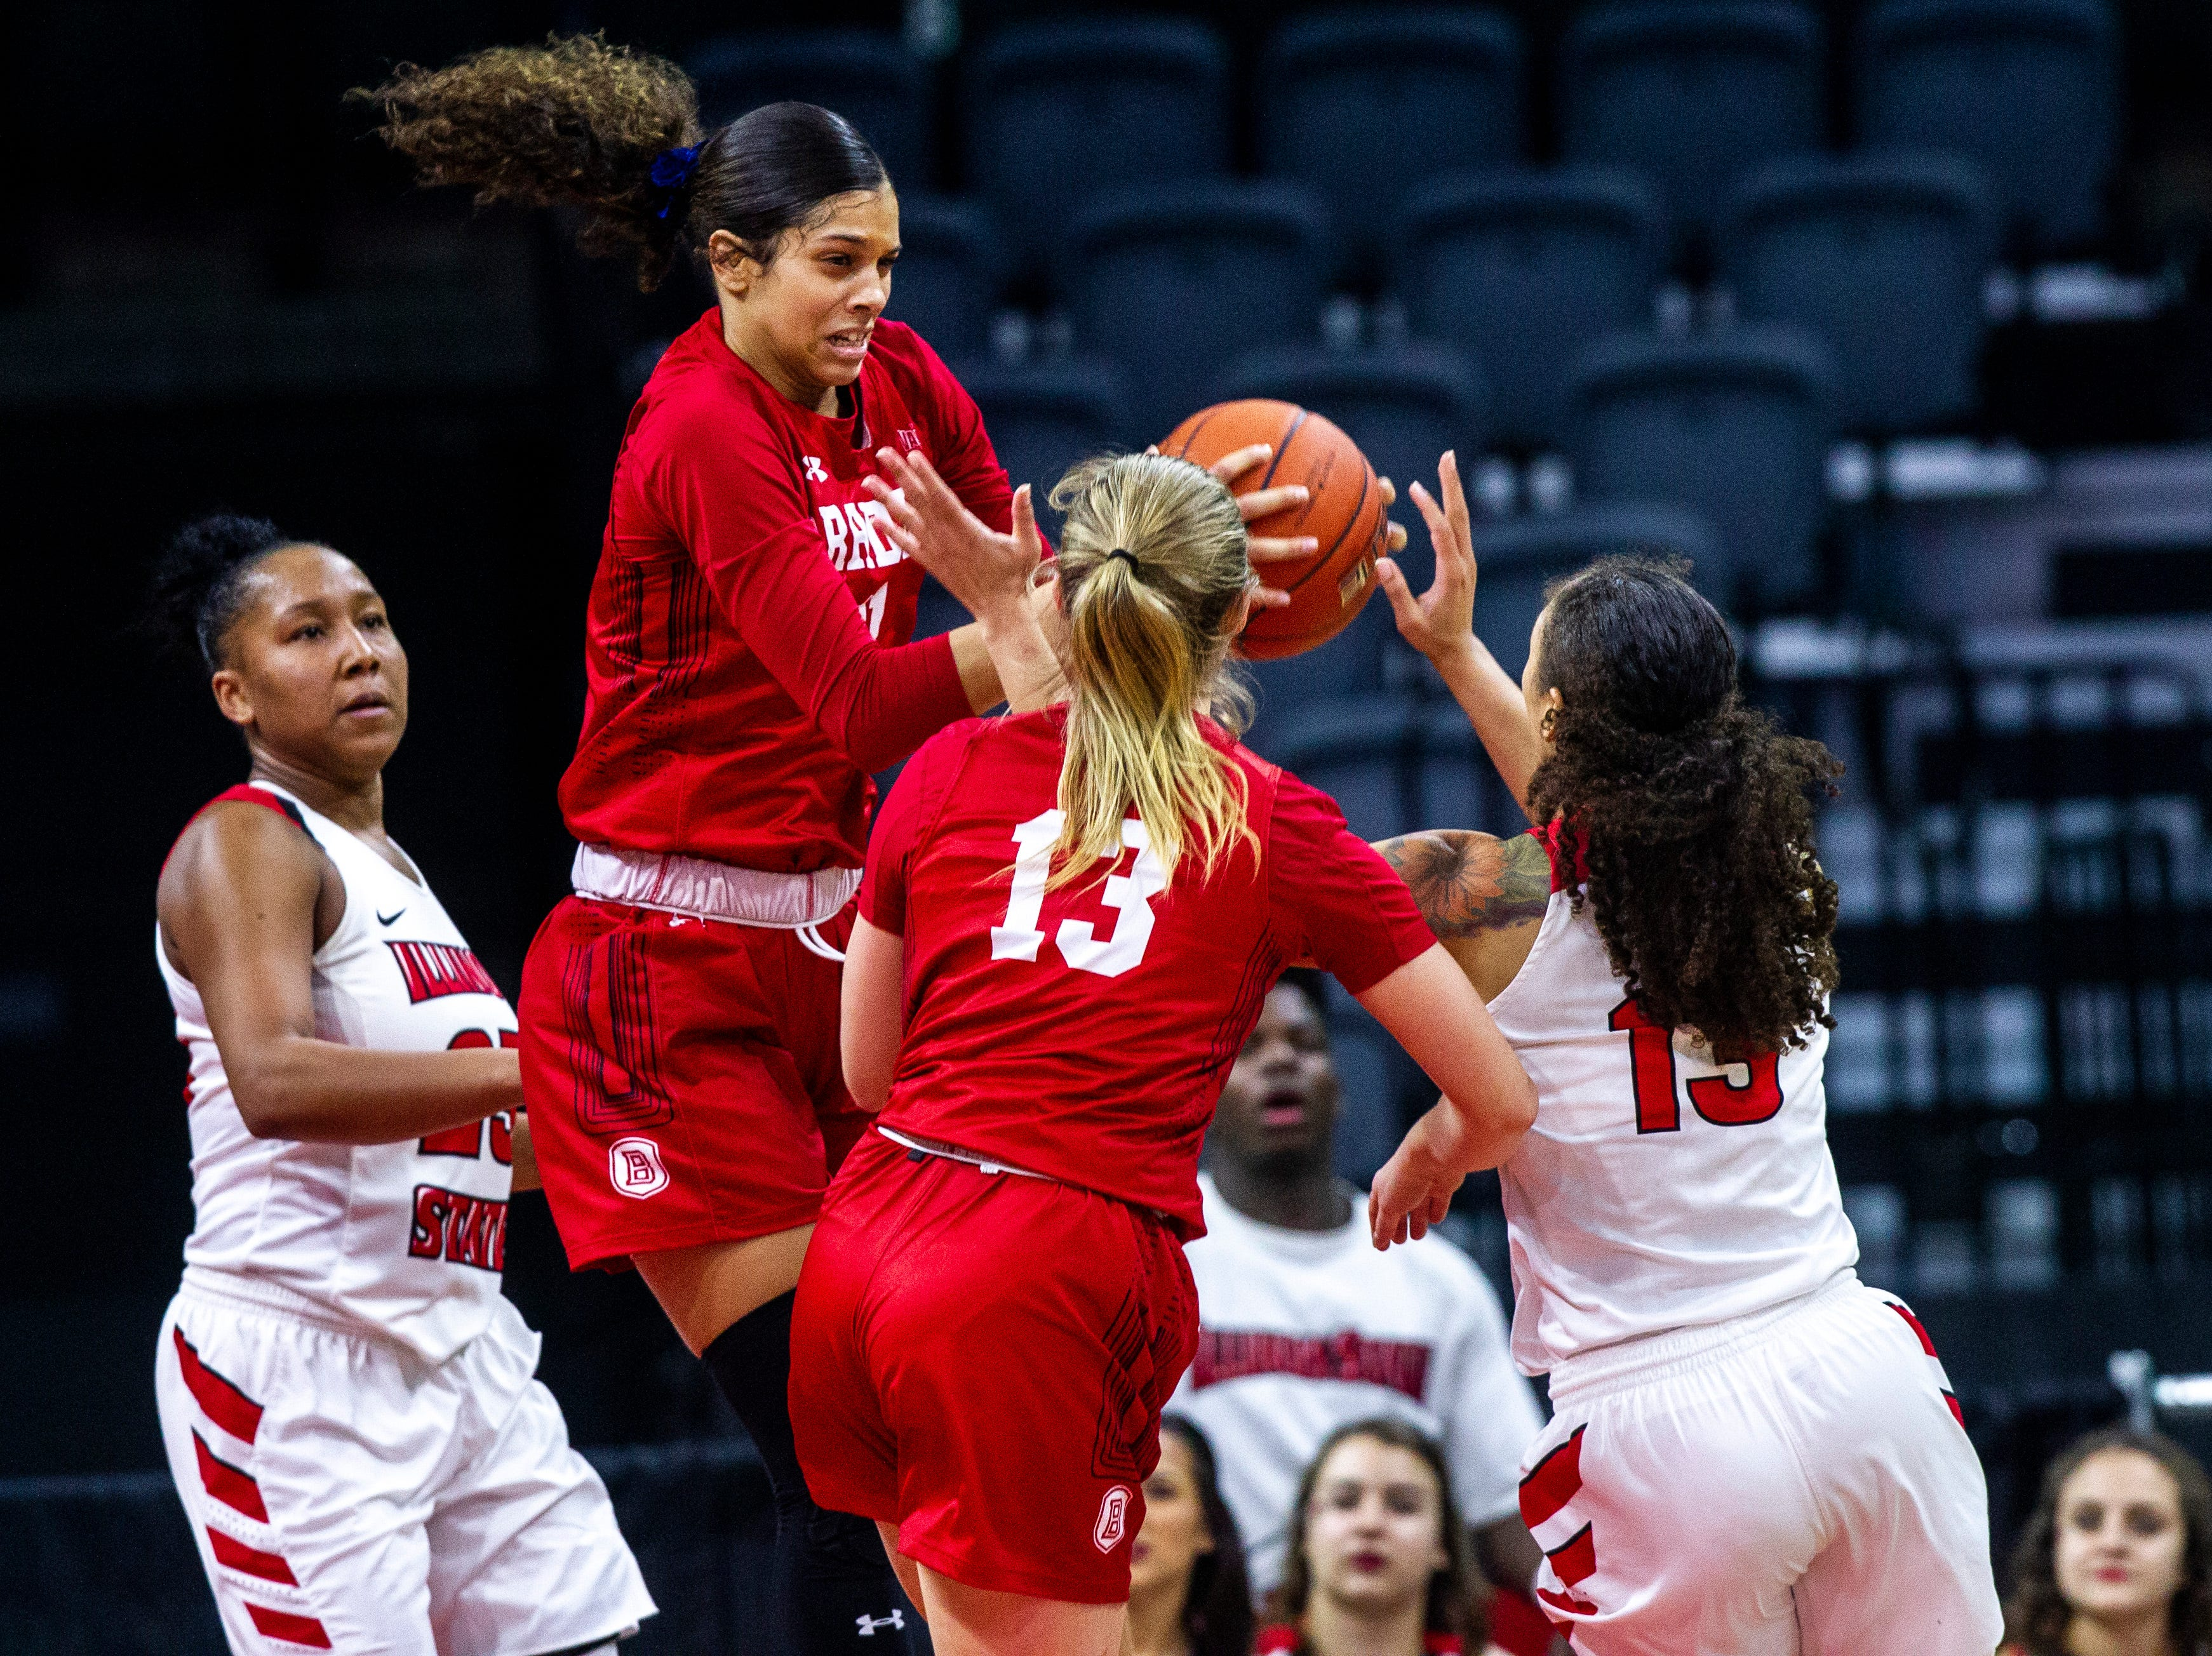 Bradley guard Lasha Petree (11) attempts to grab a rebound against Illinois State guard Katrina Beck (13) during a NCAA Missouri Valley Conference women's basketball quarterfinal tournament game, Friday, March 15, 2019, at the TaxSlayer Center in Moline, Illinois.